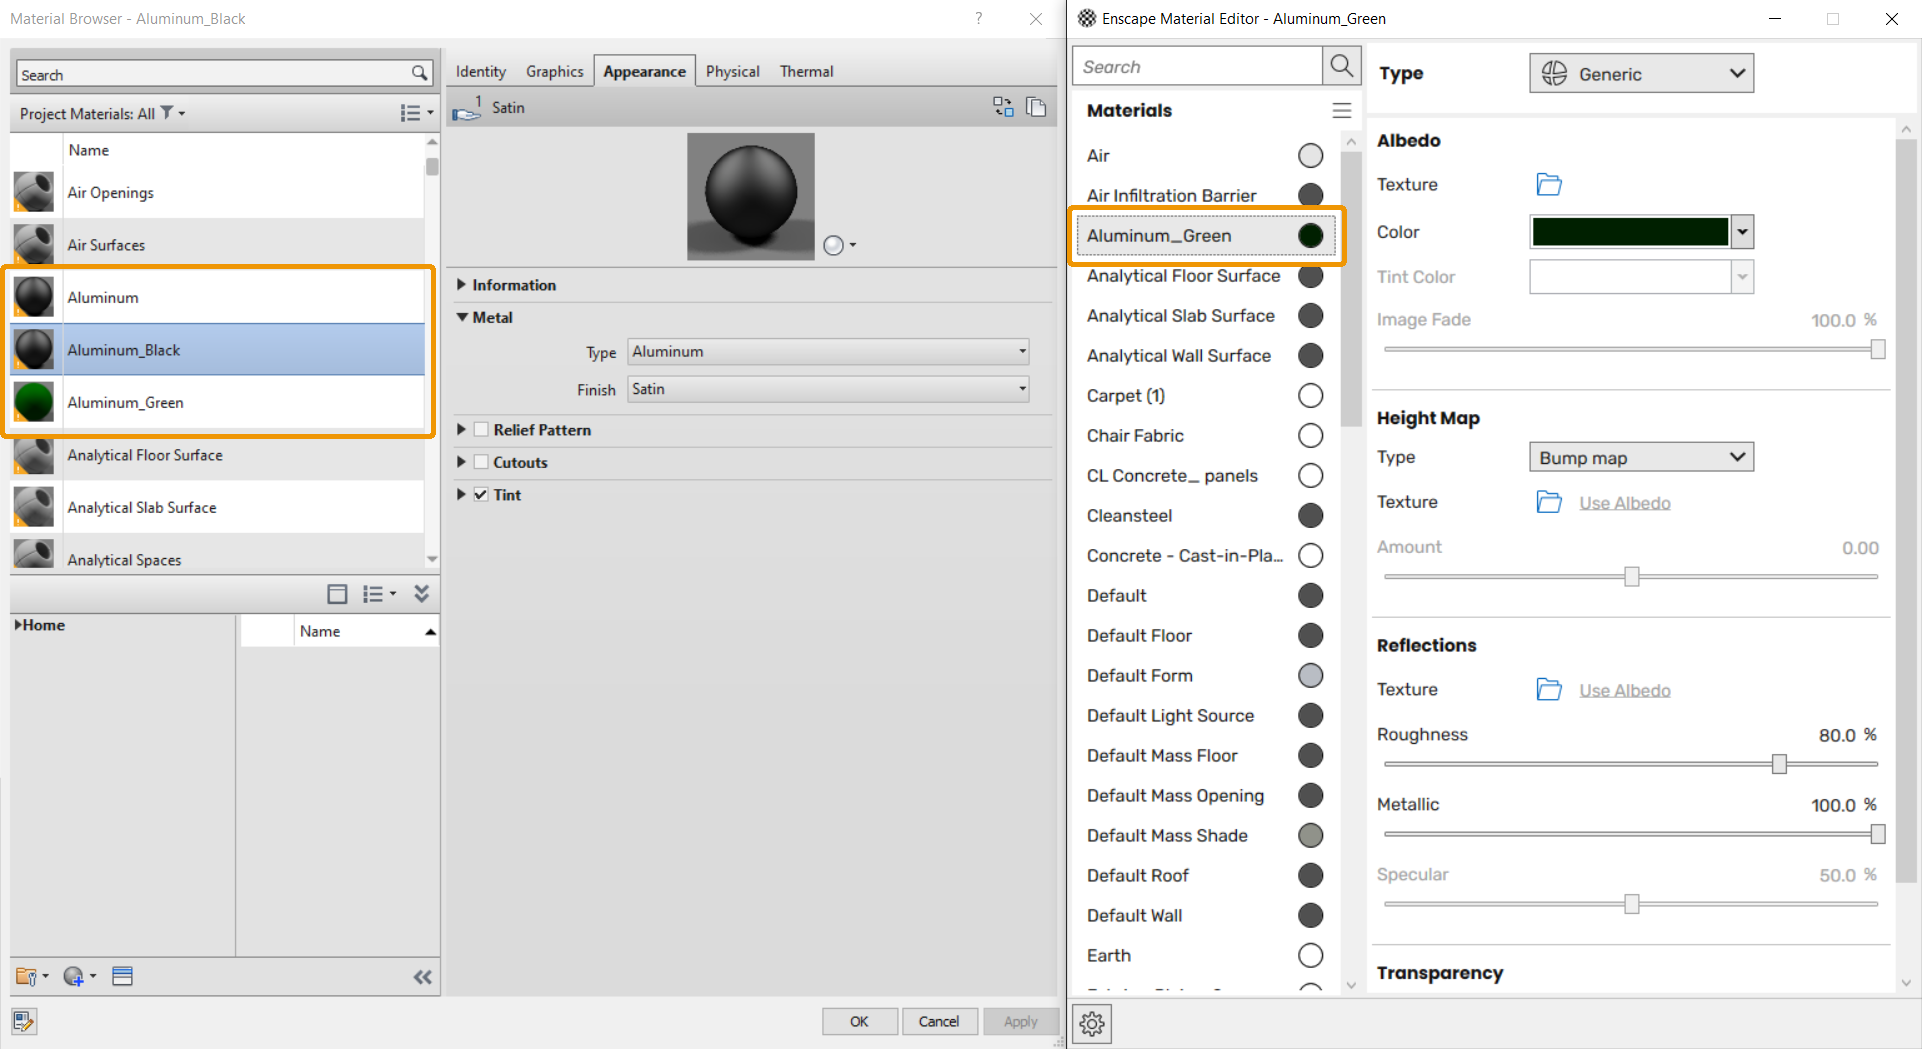 The Revit Material Editor (left) and the Enscape Material Editor (right) showing the omission of Appearance materials other than 'Generic'